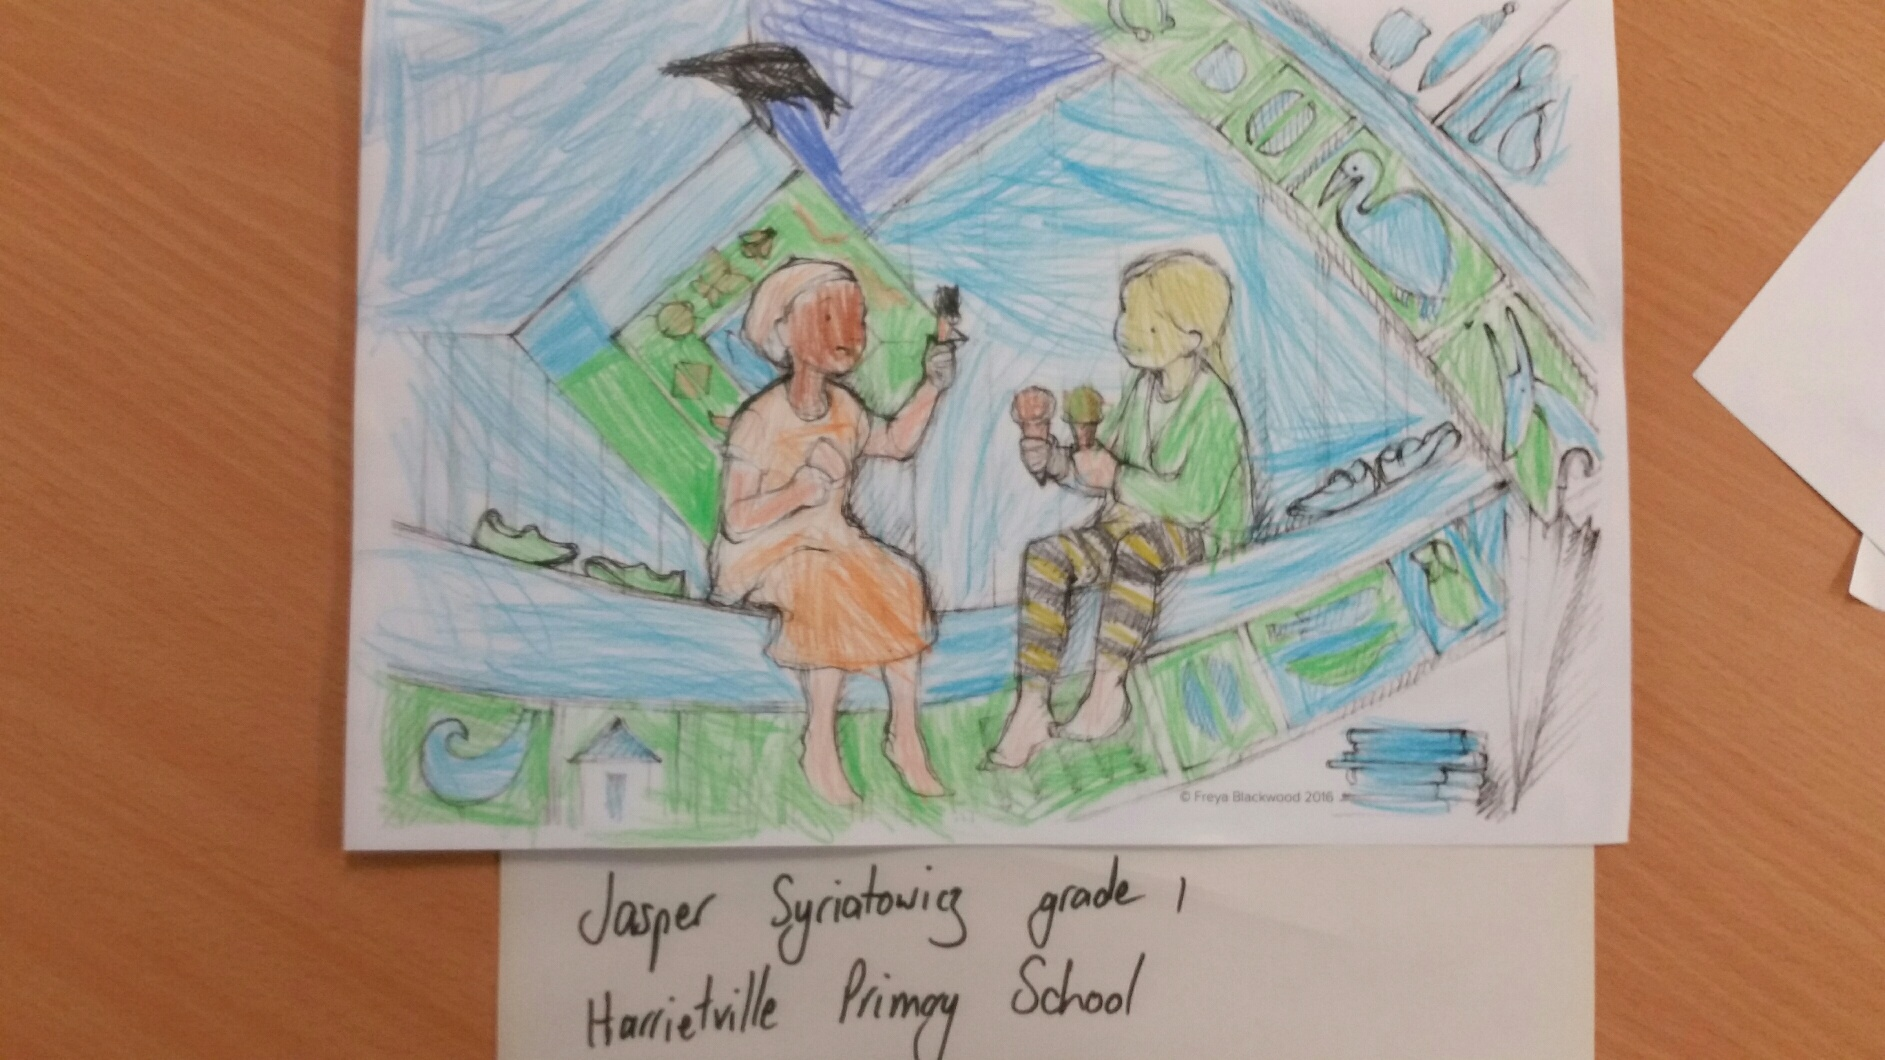 Jasper S, Year 1, Harrietville Primary School, VIC